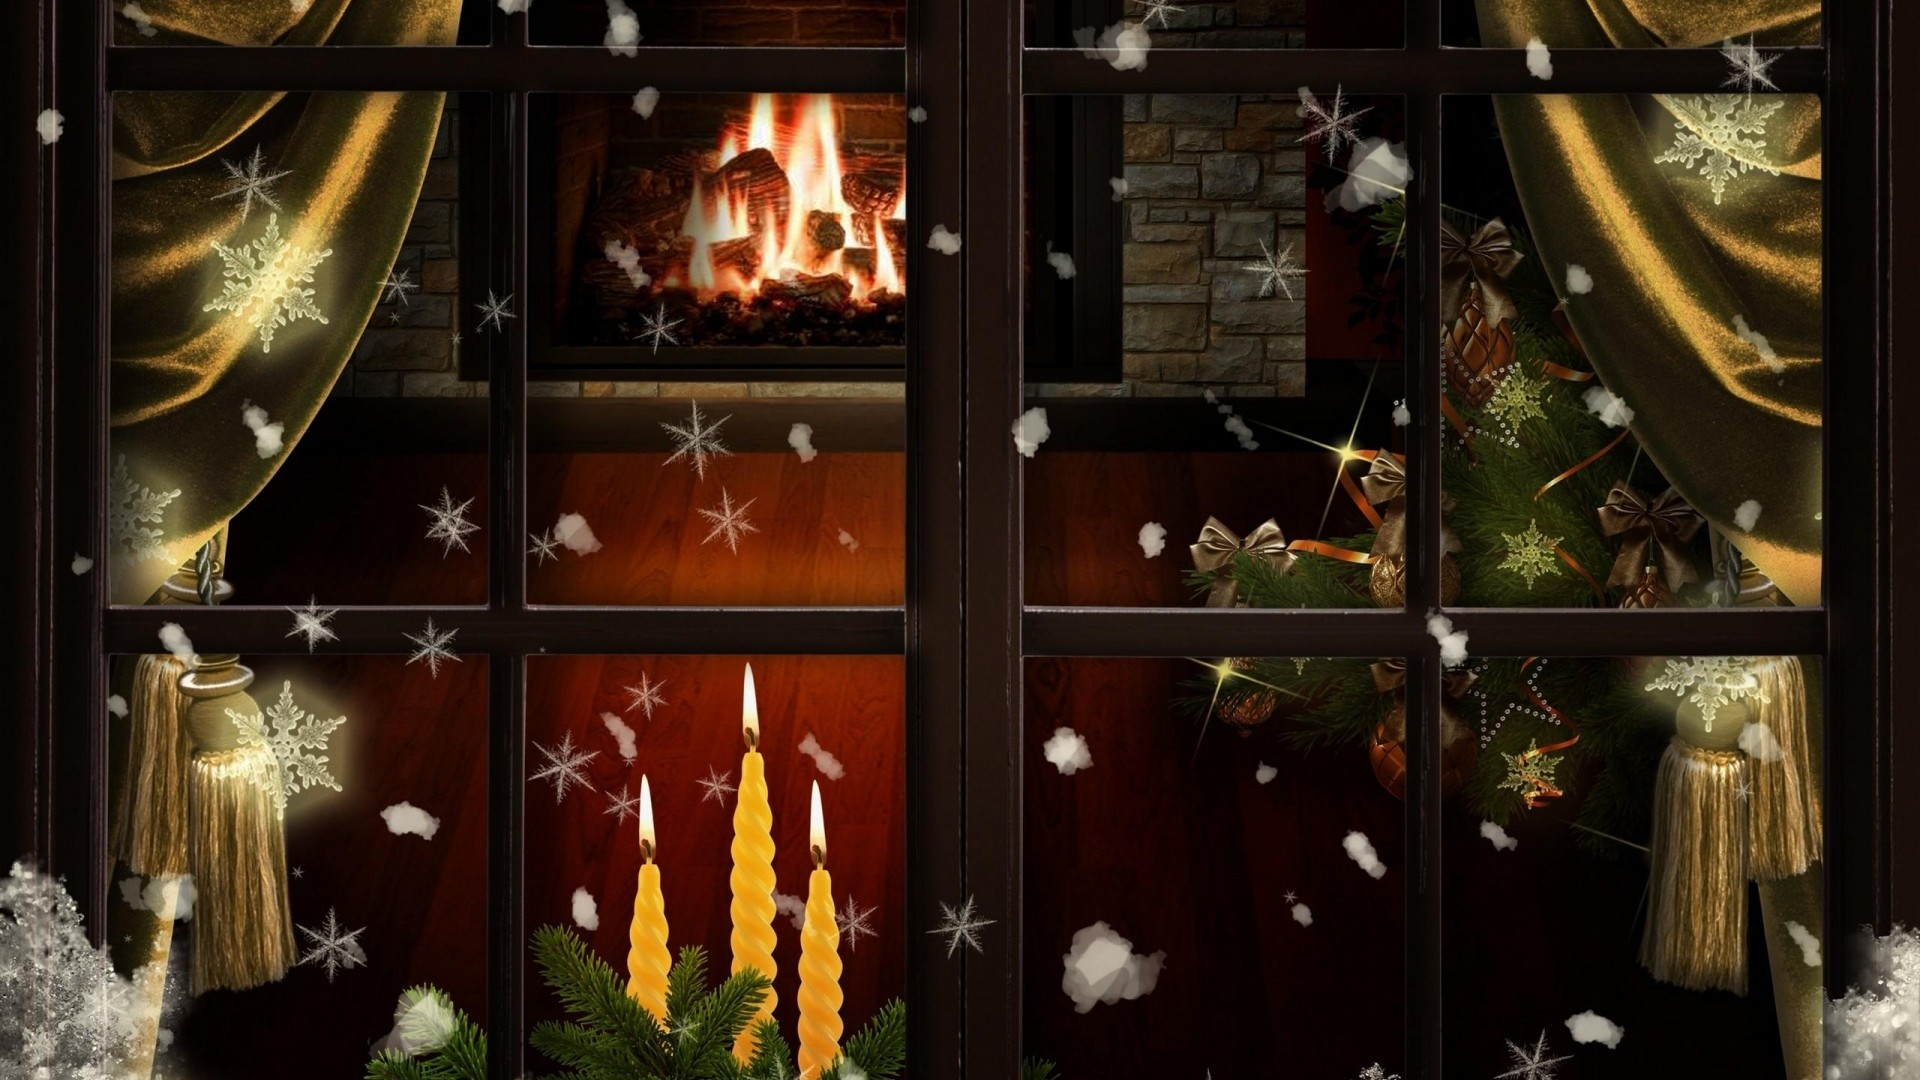 1920x1080  Wallpaper window, fireplace, candles, christmas tree, cozy,  christmas